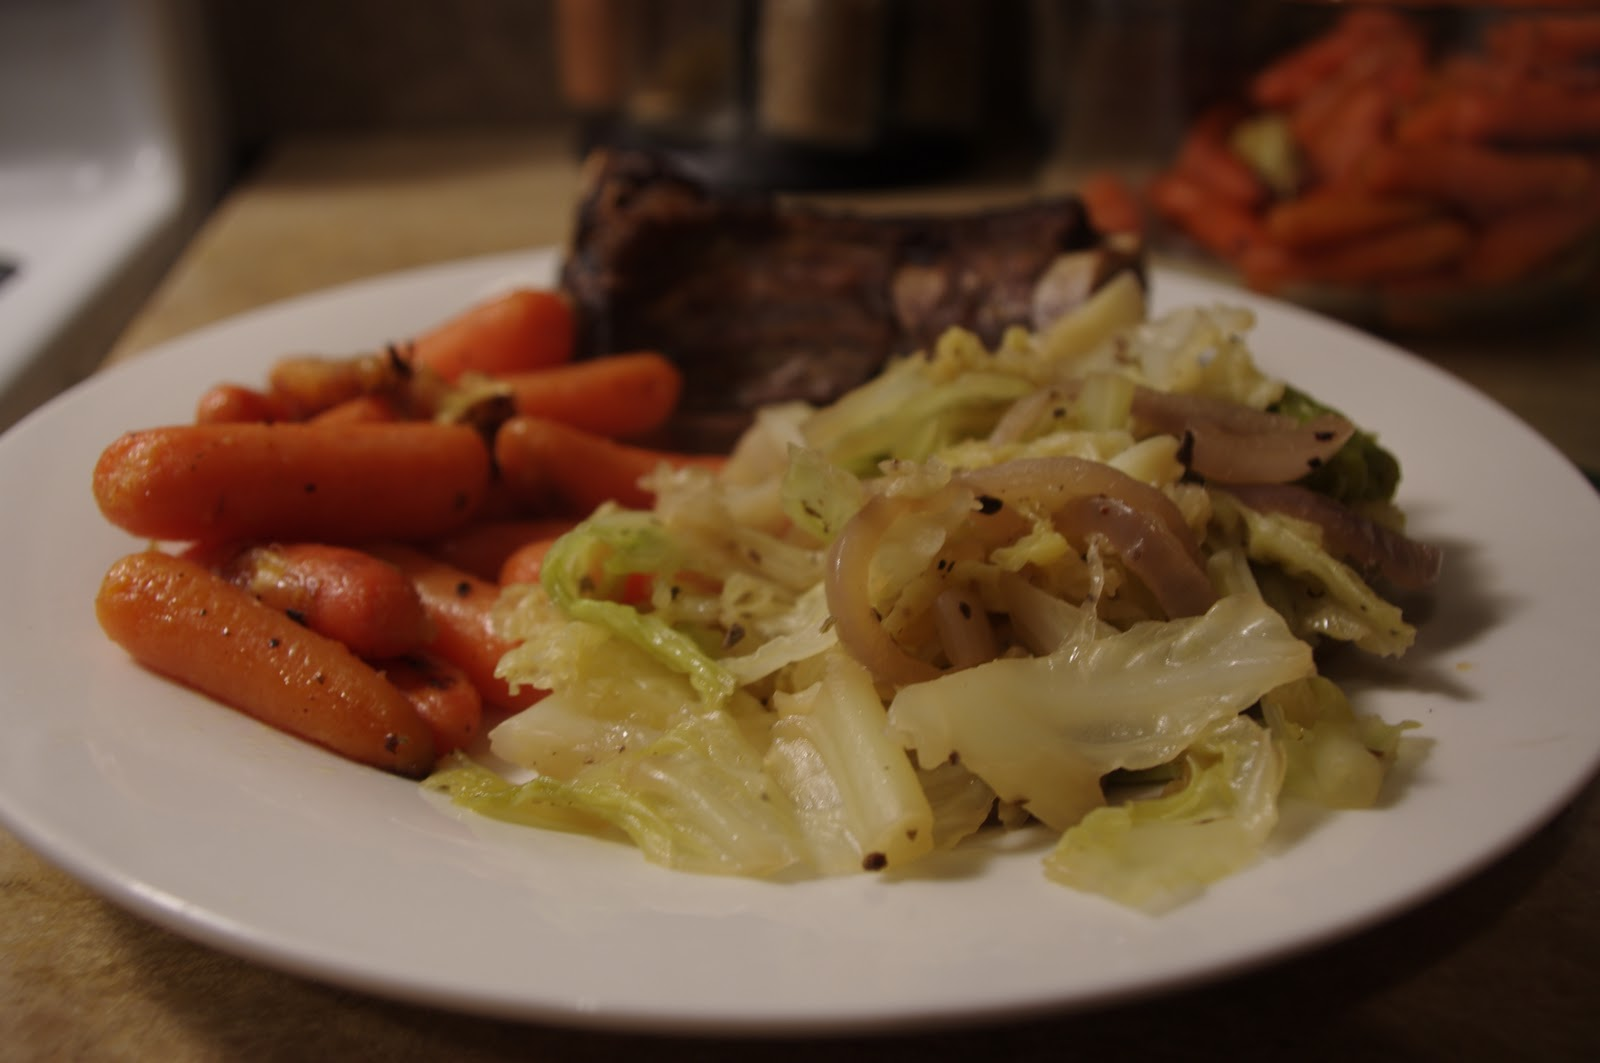 Sauteed Cabbage And Glazed carrots | Cook Gordon Ramsay